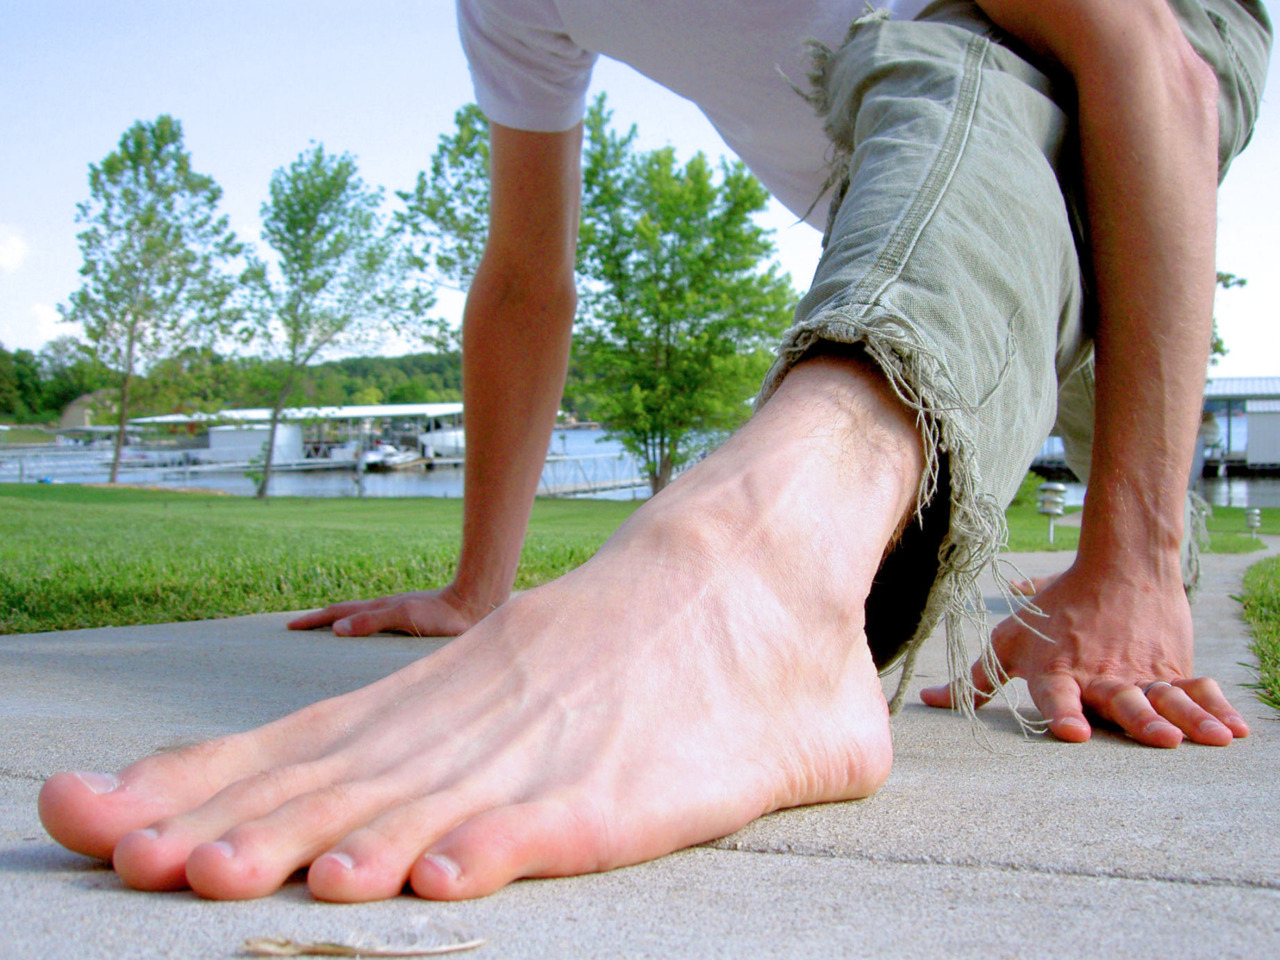 2018-12-30 19:25:52 - a perfect foot socksuckerlndn http://www.neofic.com